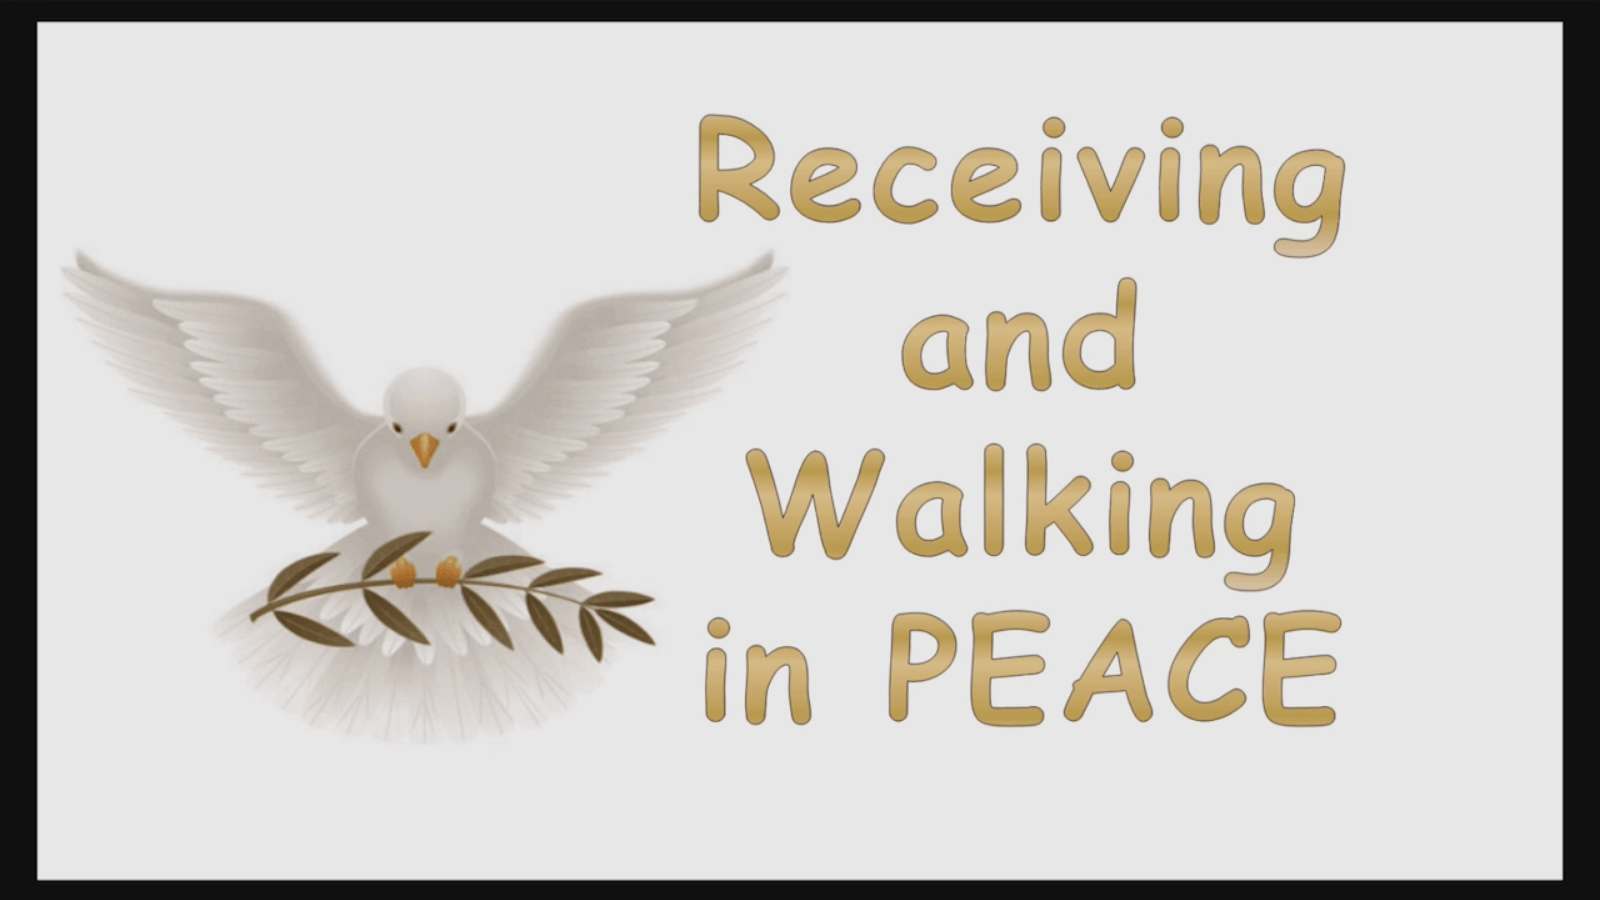 Receiving and Walking in Peace